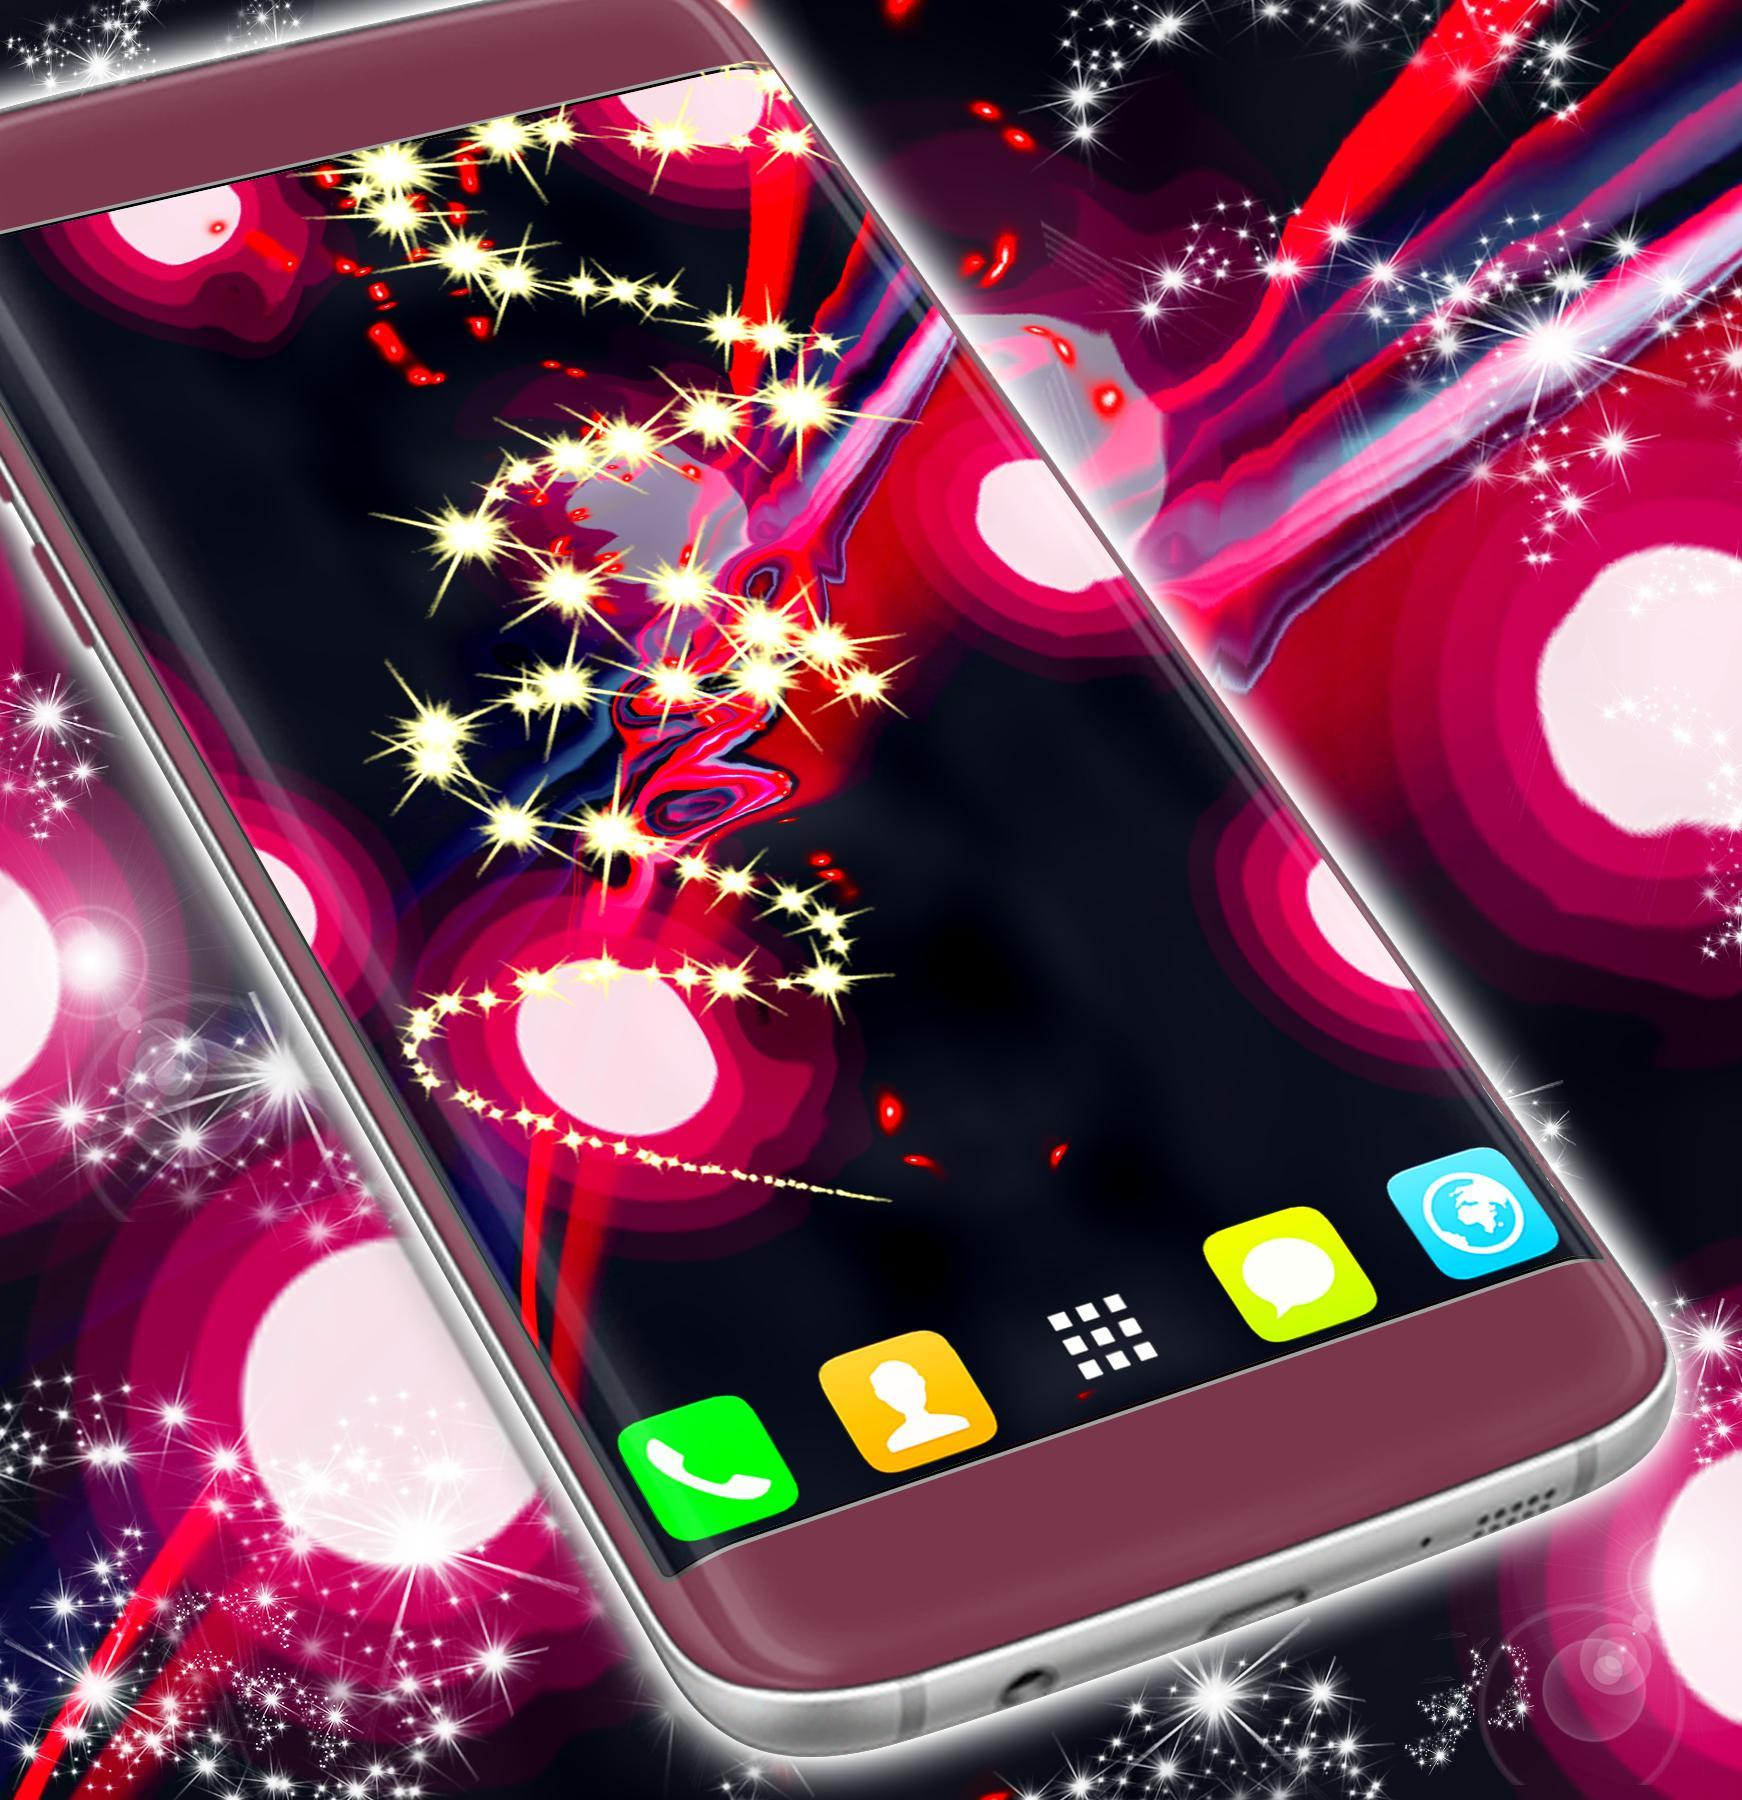 Live Wallpaper For Samsung Galaxy J5 For Android APK Download